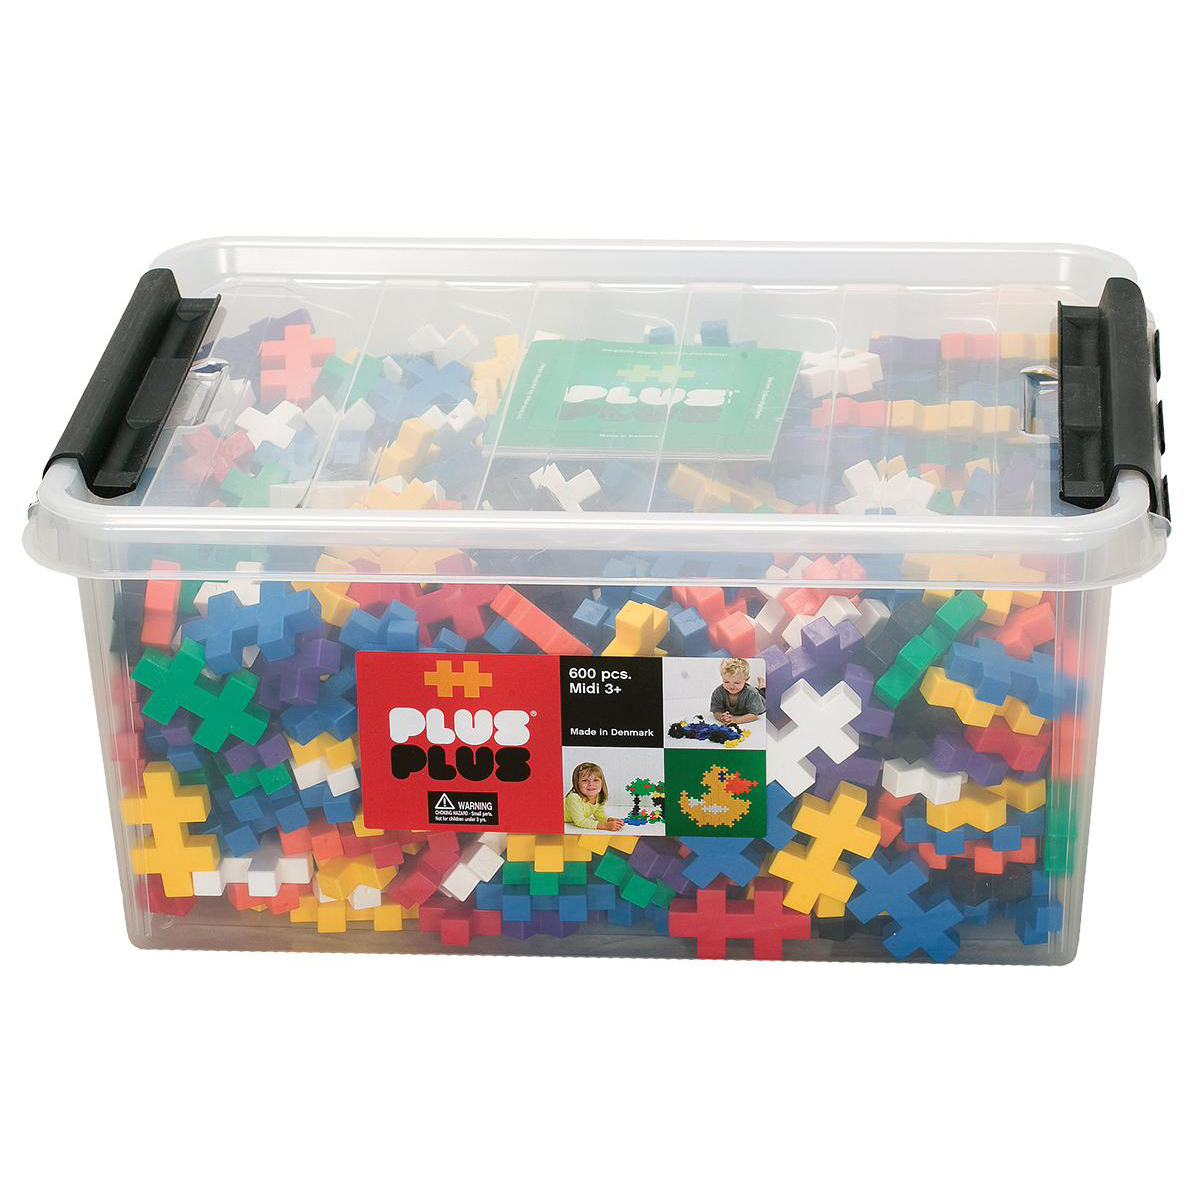 Plus Plus Construction Sets (600 Medium pieces)